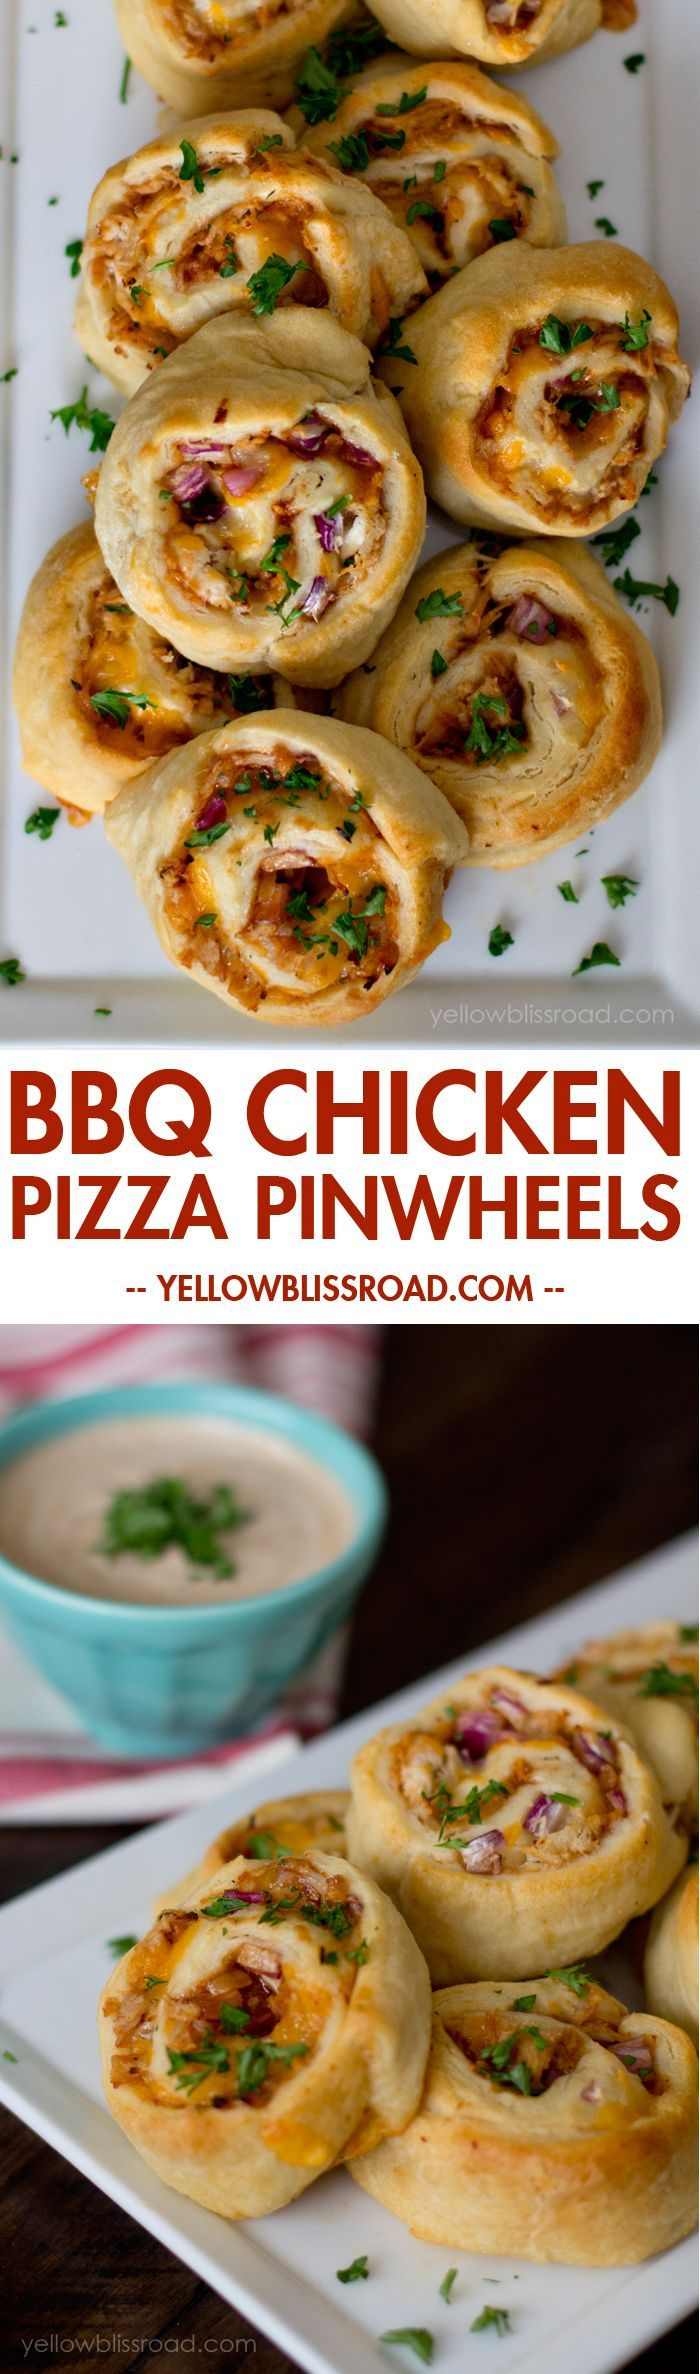 http://www.swagscent.com/ BBQ Chicken Pizza Pinwheels